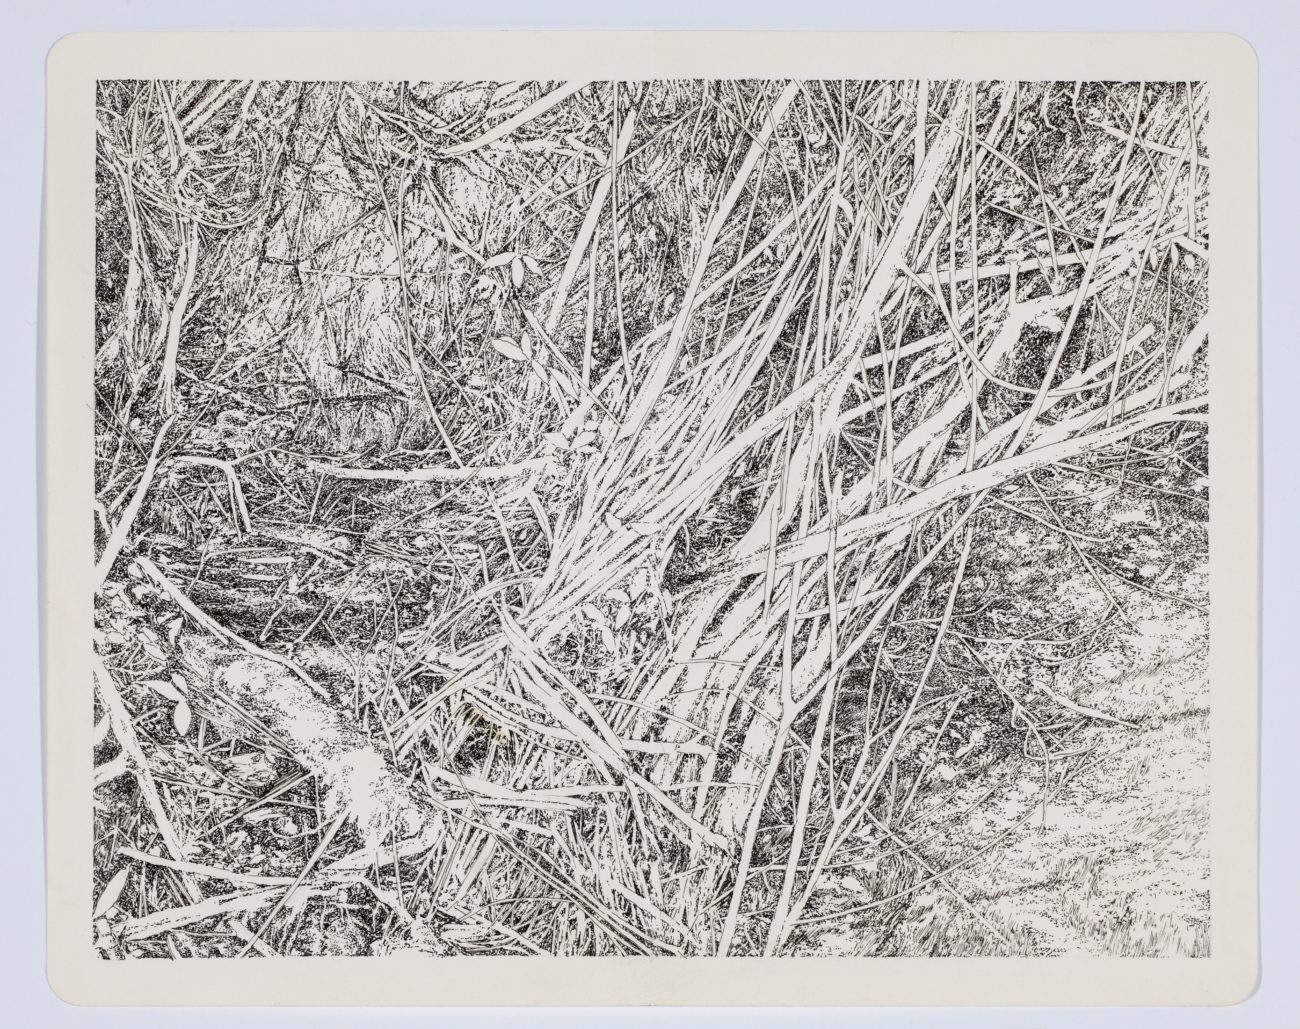 Emmanuel Henninger, Art, French, Forest, Black and White, Ink, Territories